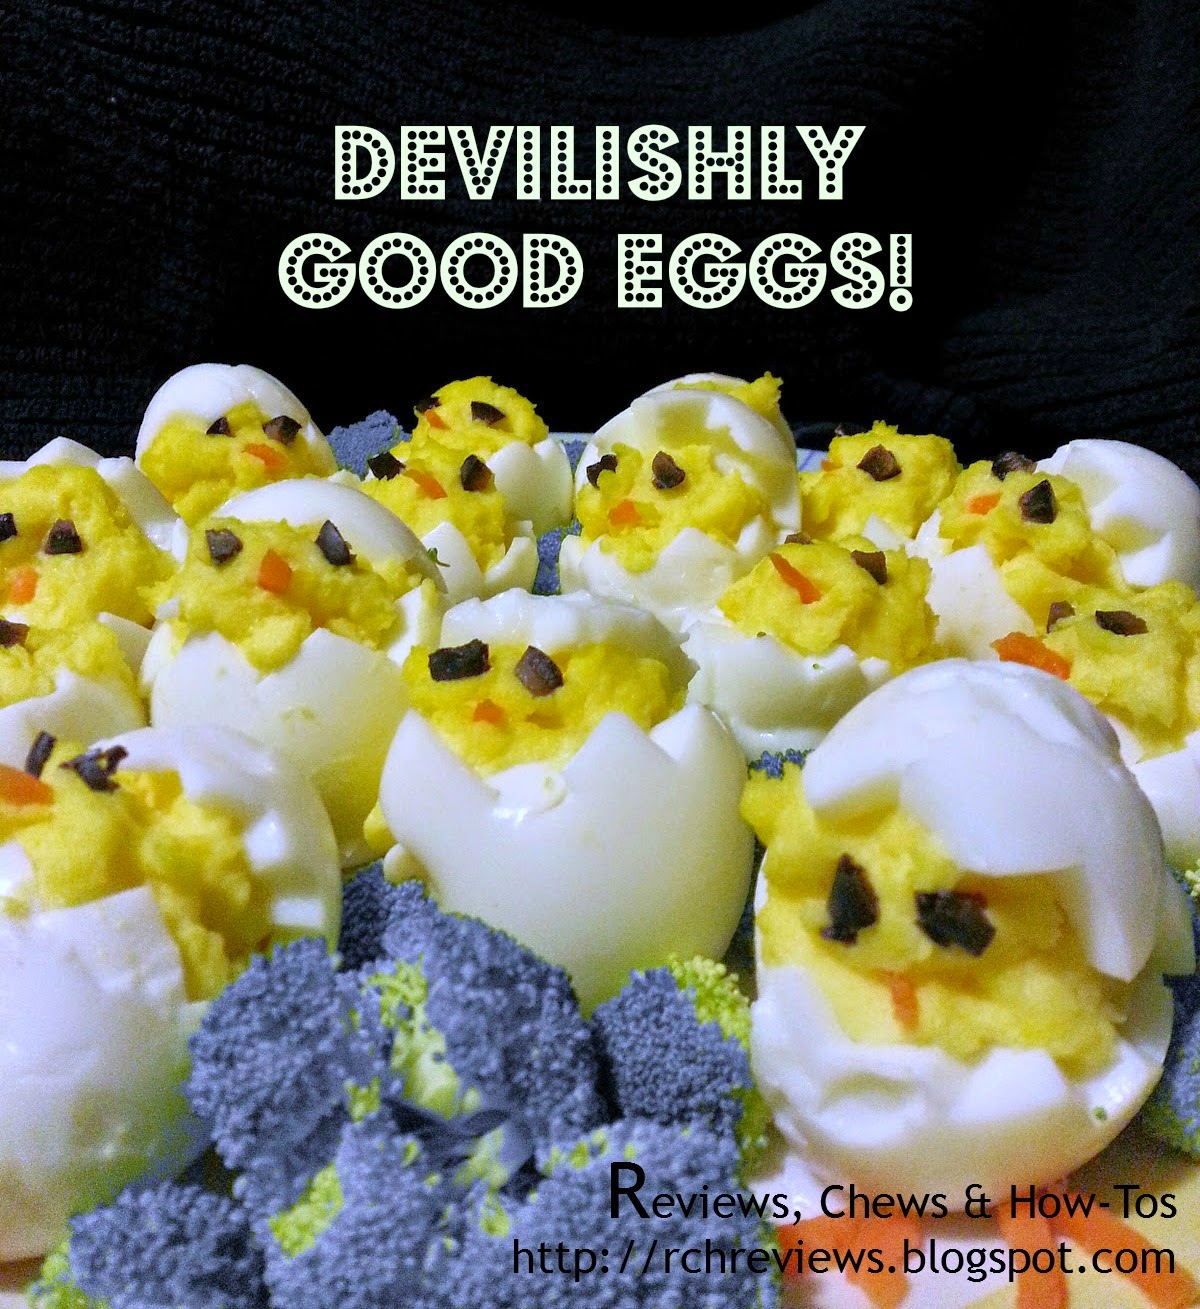 Devilish Good Easter Eggs by Reviews, Chews, & How-Tos